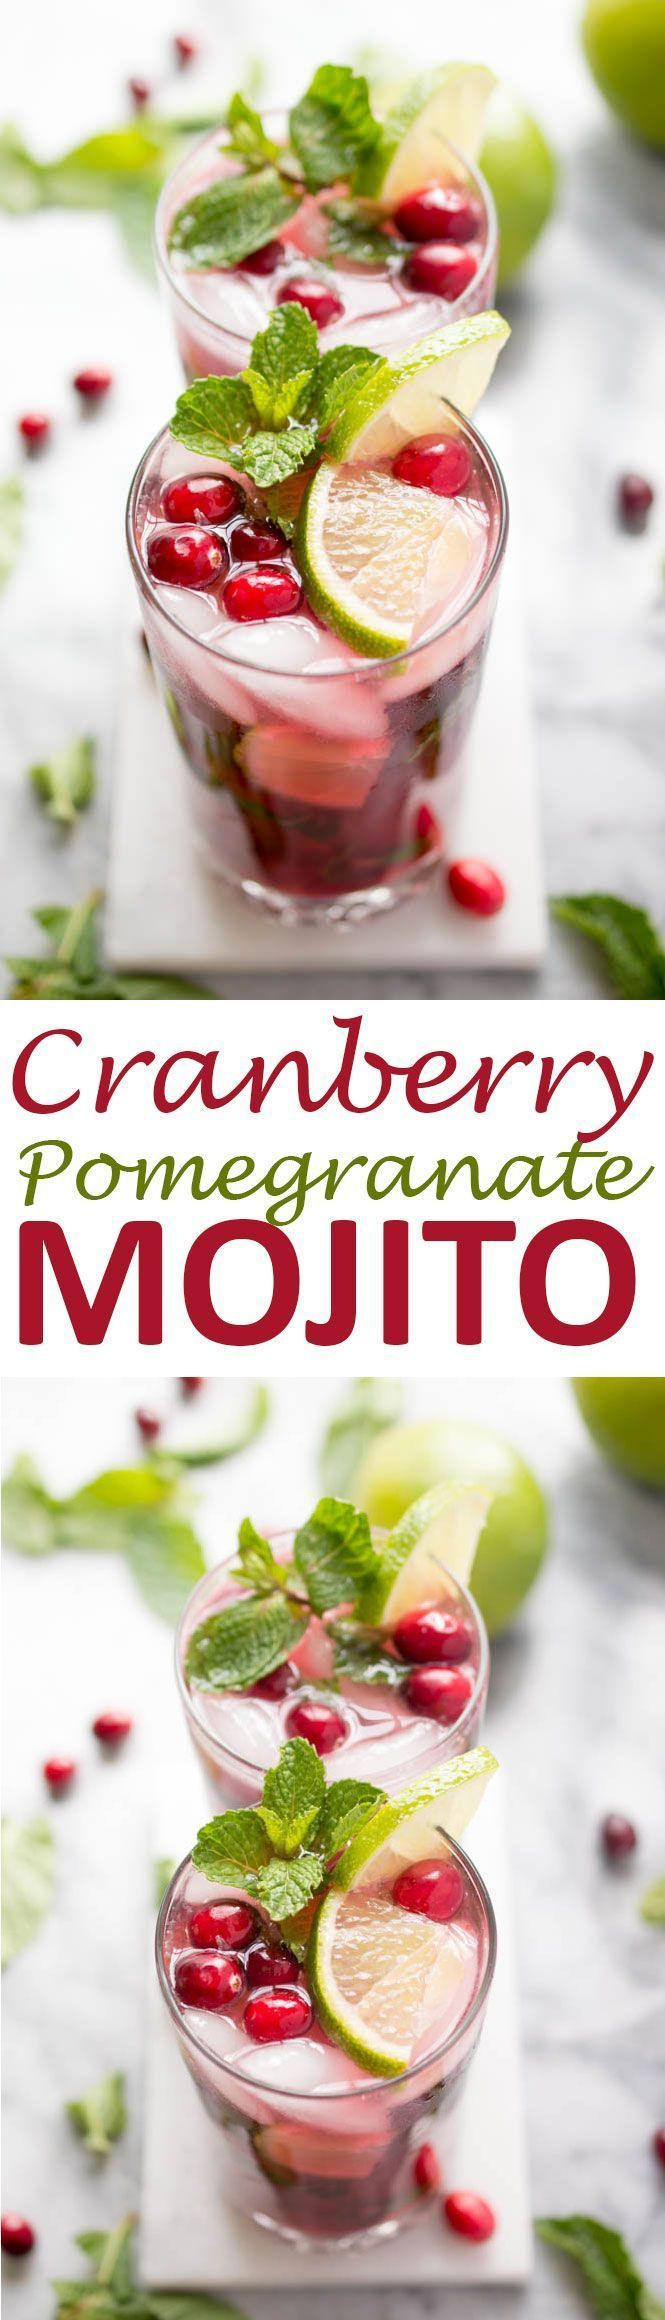 Holiday Cranberry Pomegranate Mojito: made with fresh mint, cranberry reduction, pomegranate juice and fresh lime.